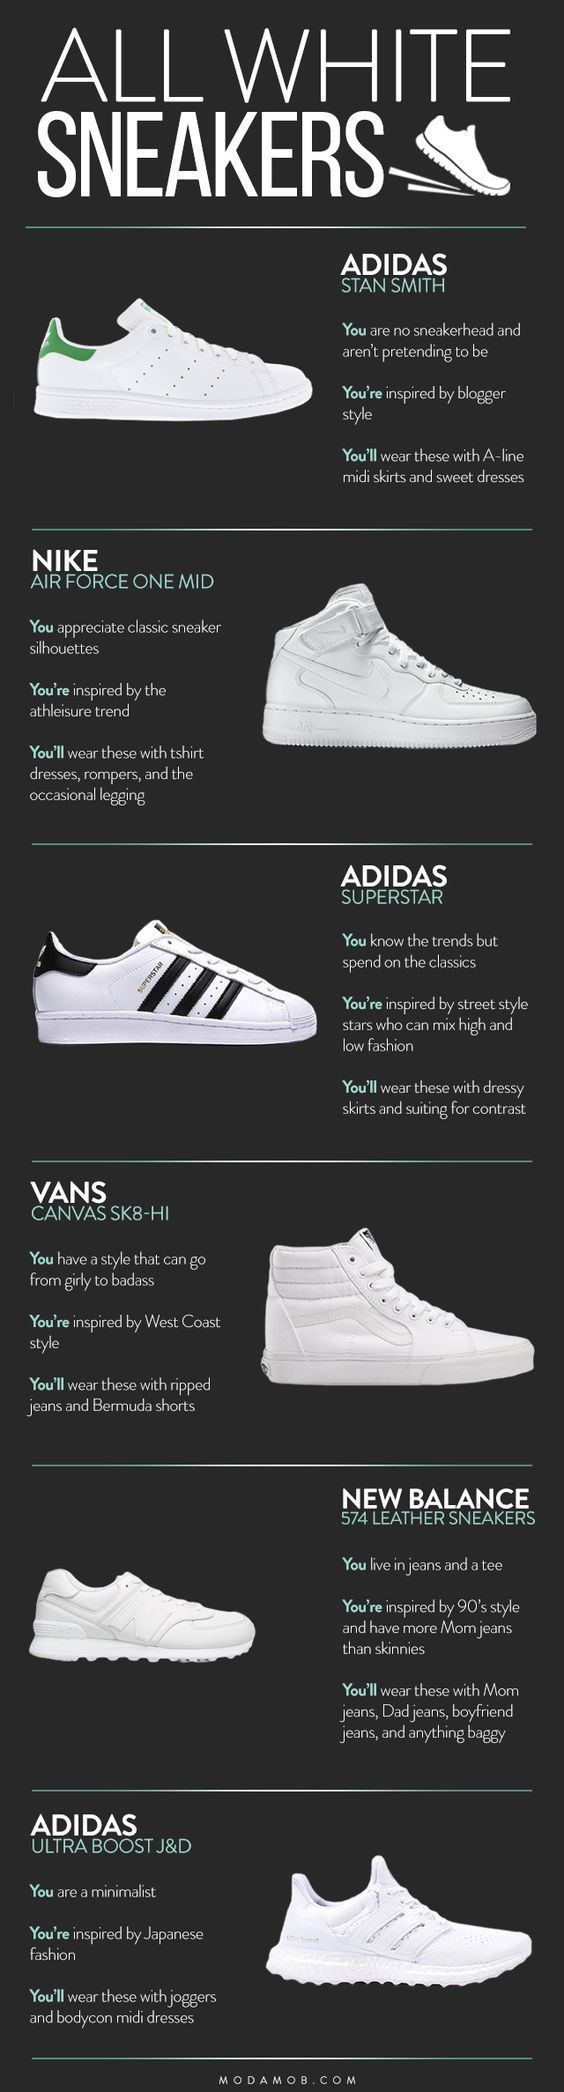 10 Outfits You Can Wear With Your White Sneakers To Look Super Stylish.